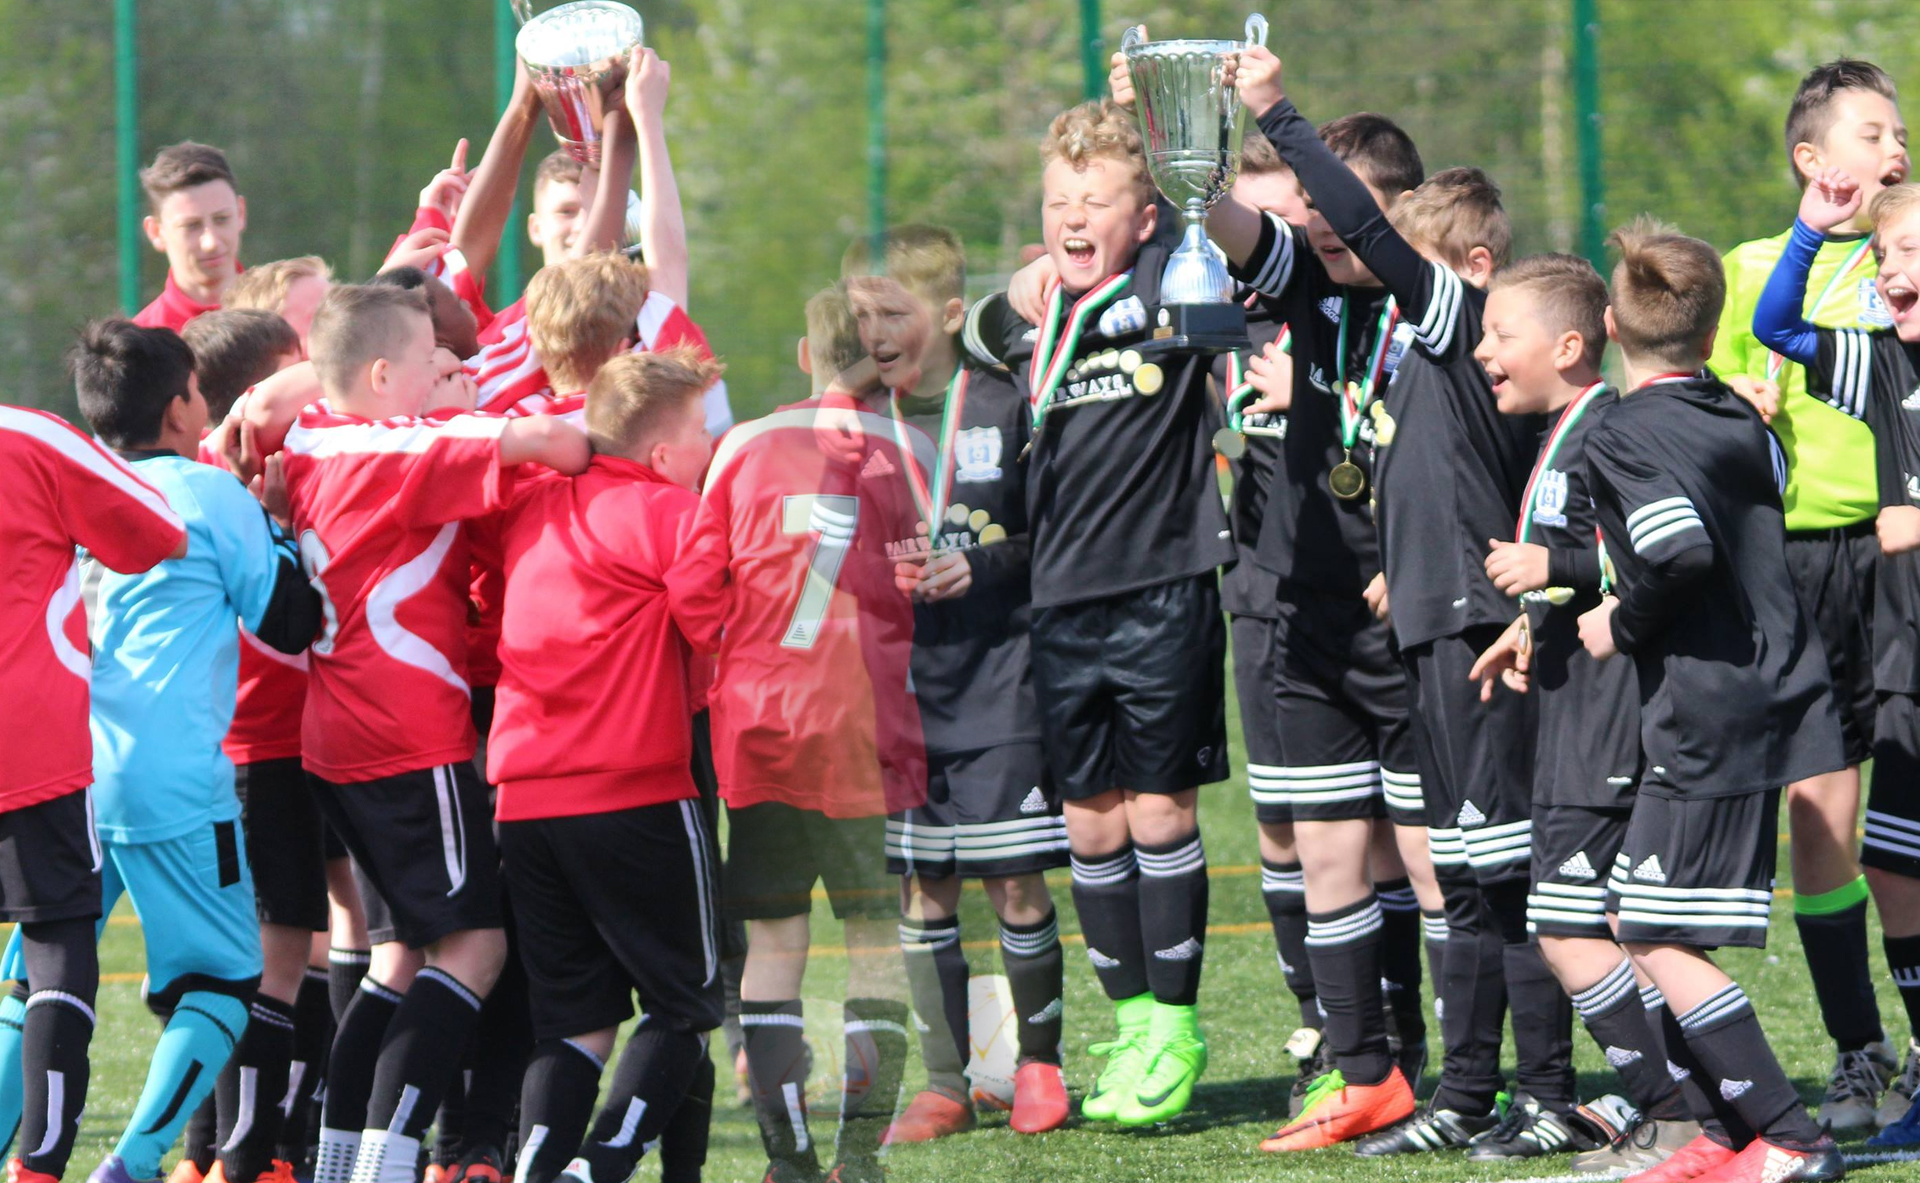 Nomads Easter Tournament raises over £2,500 for gap charity foundation